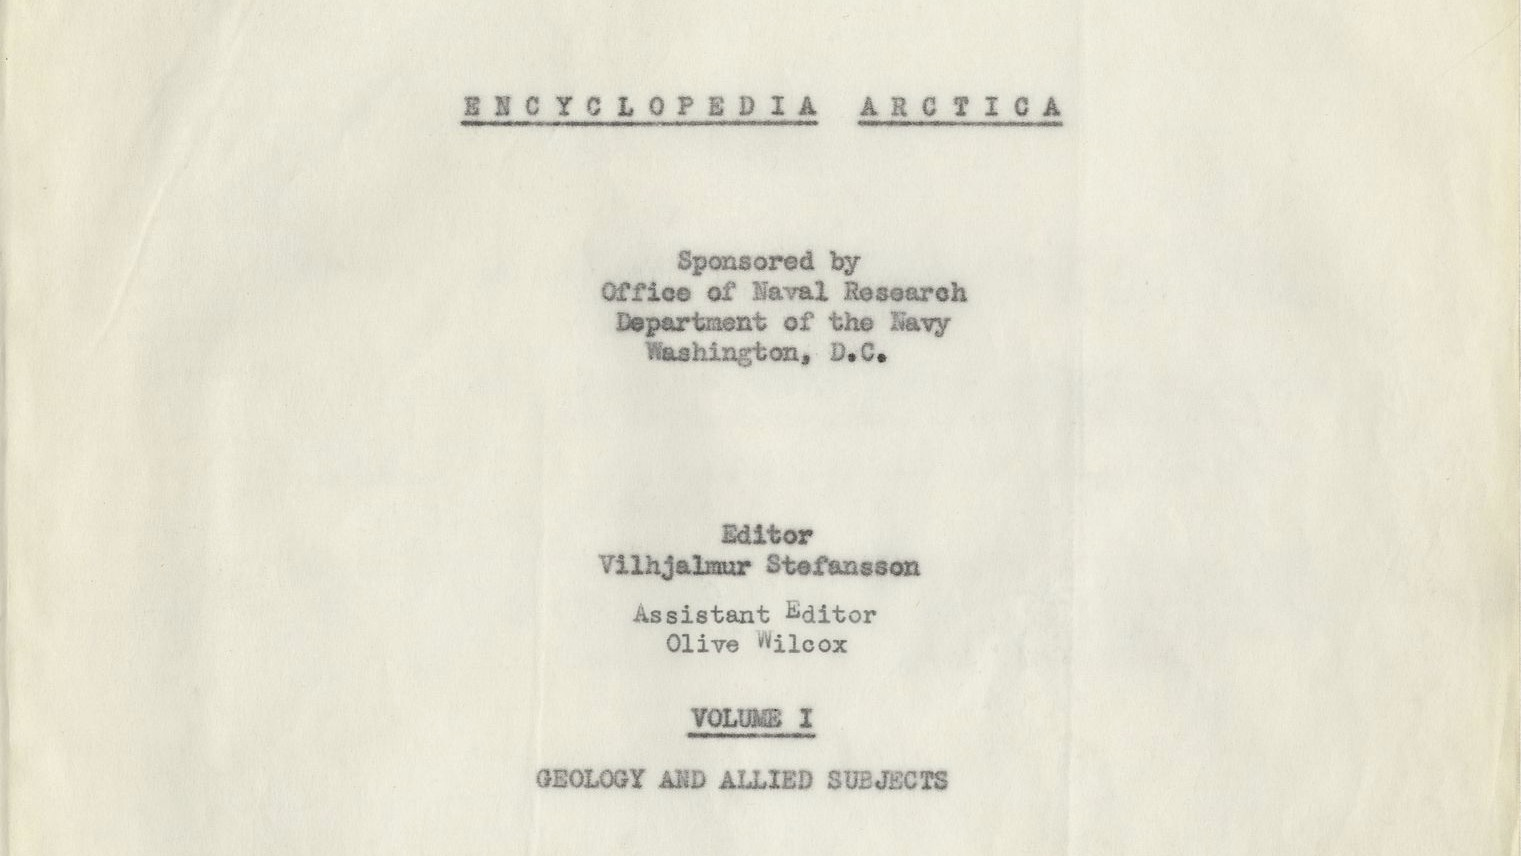 scan of the title page of the Encyclopedia Arctica